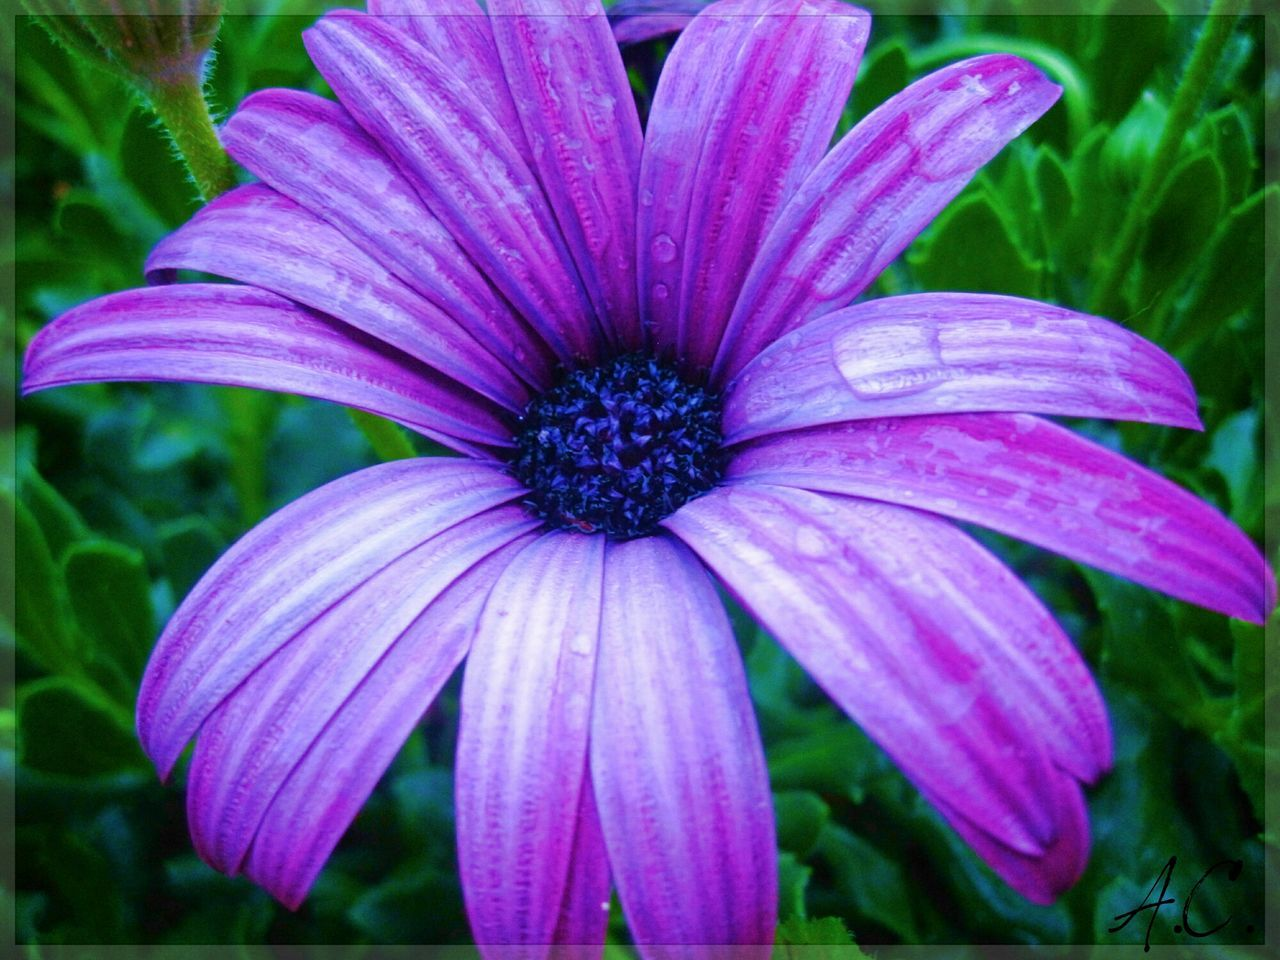 flower, petal, fragility, nature, plant, flower head, blooming, beauty in nature, outdoors, freshness, growth, close-up, day, no people, osteospermum